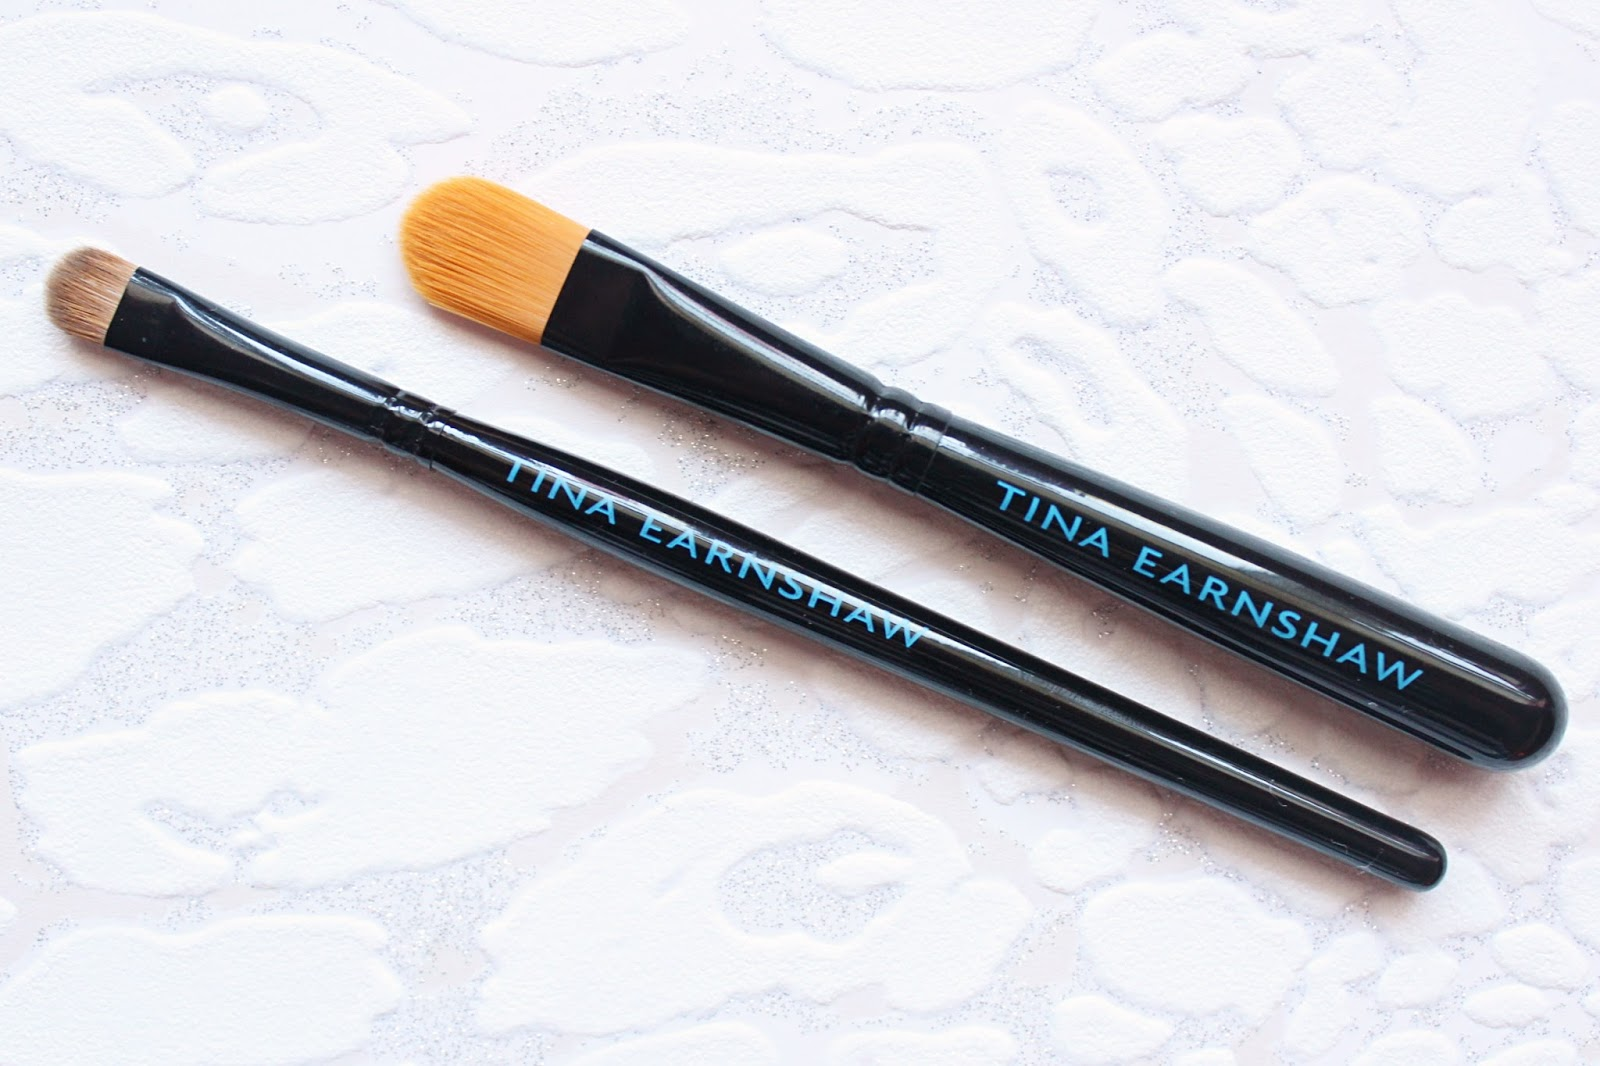 Tina Earnshaw Eye Brushes Review